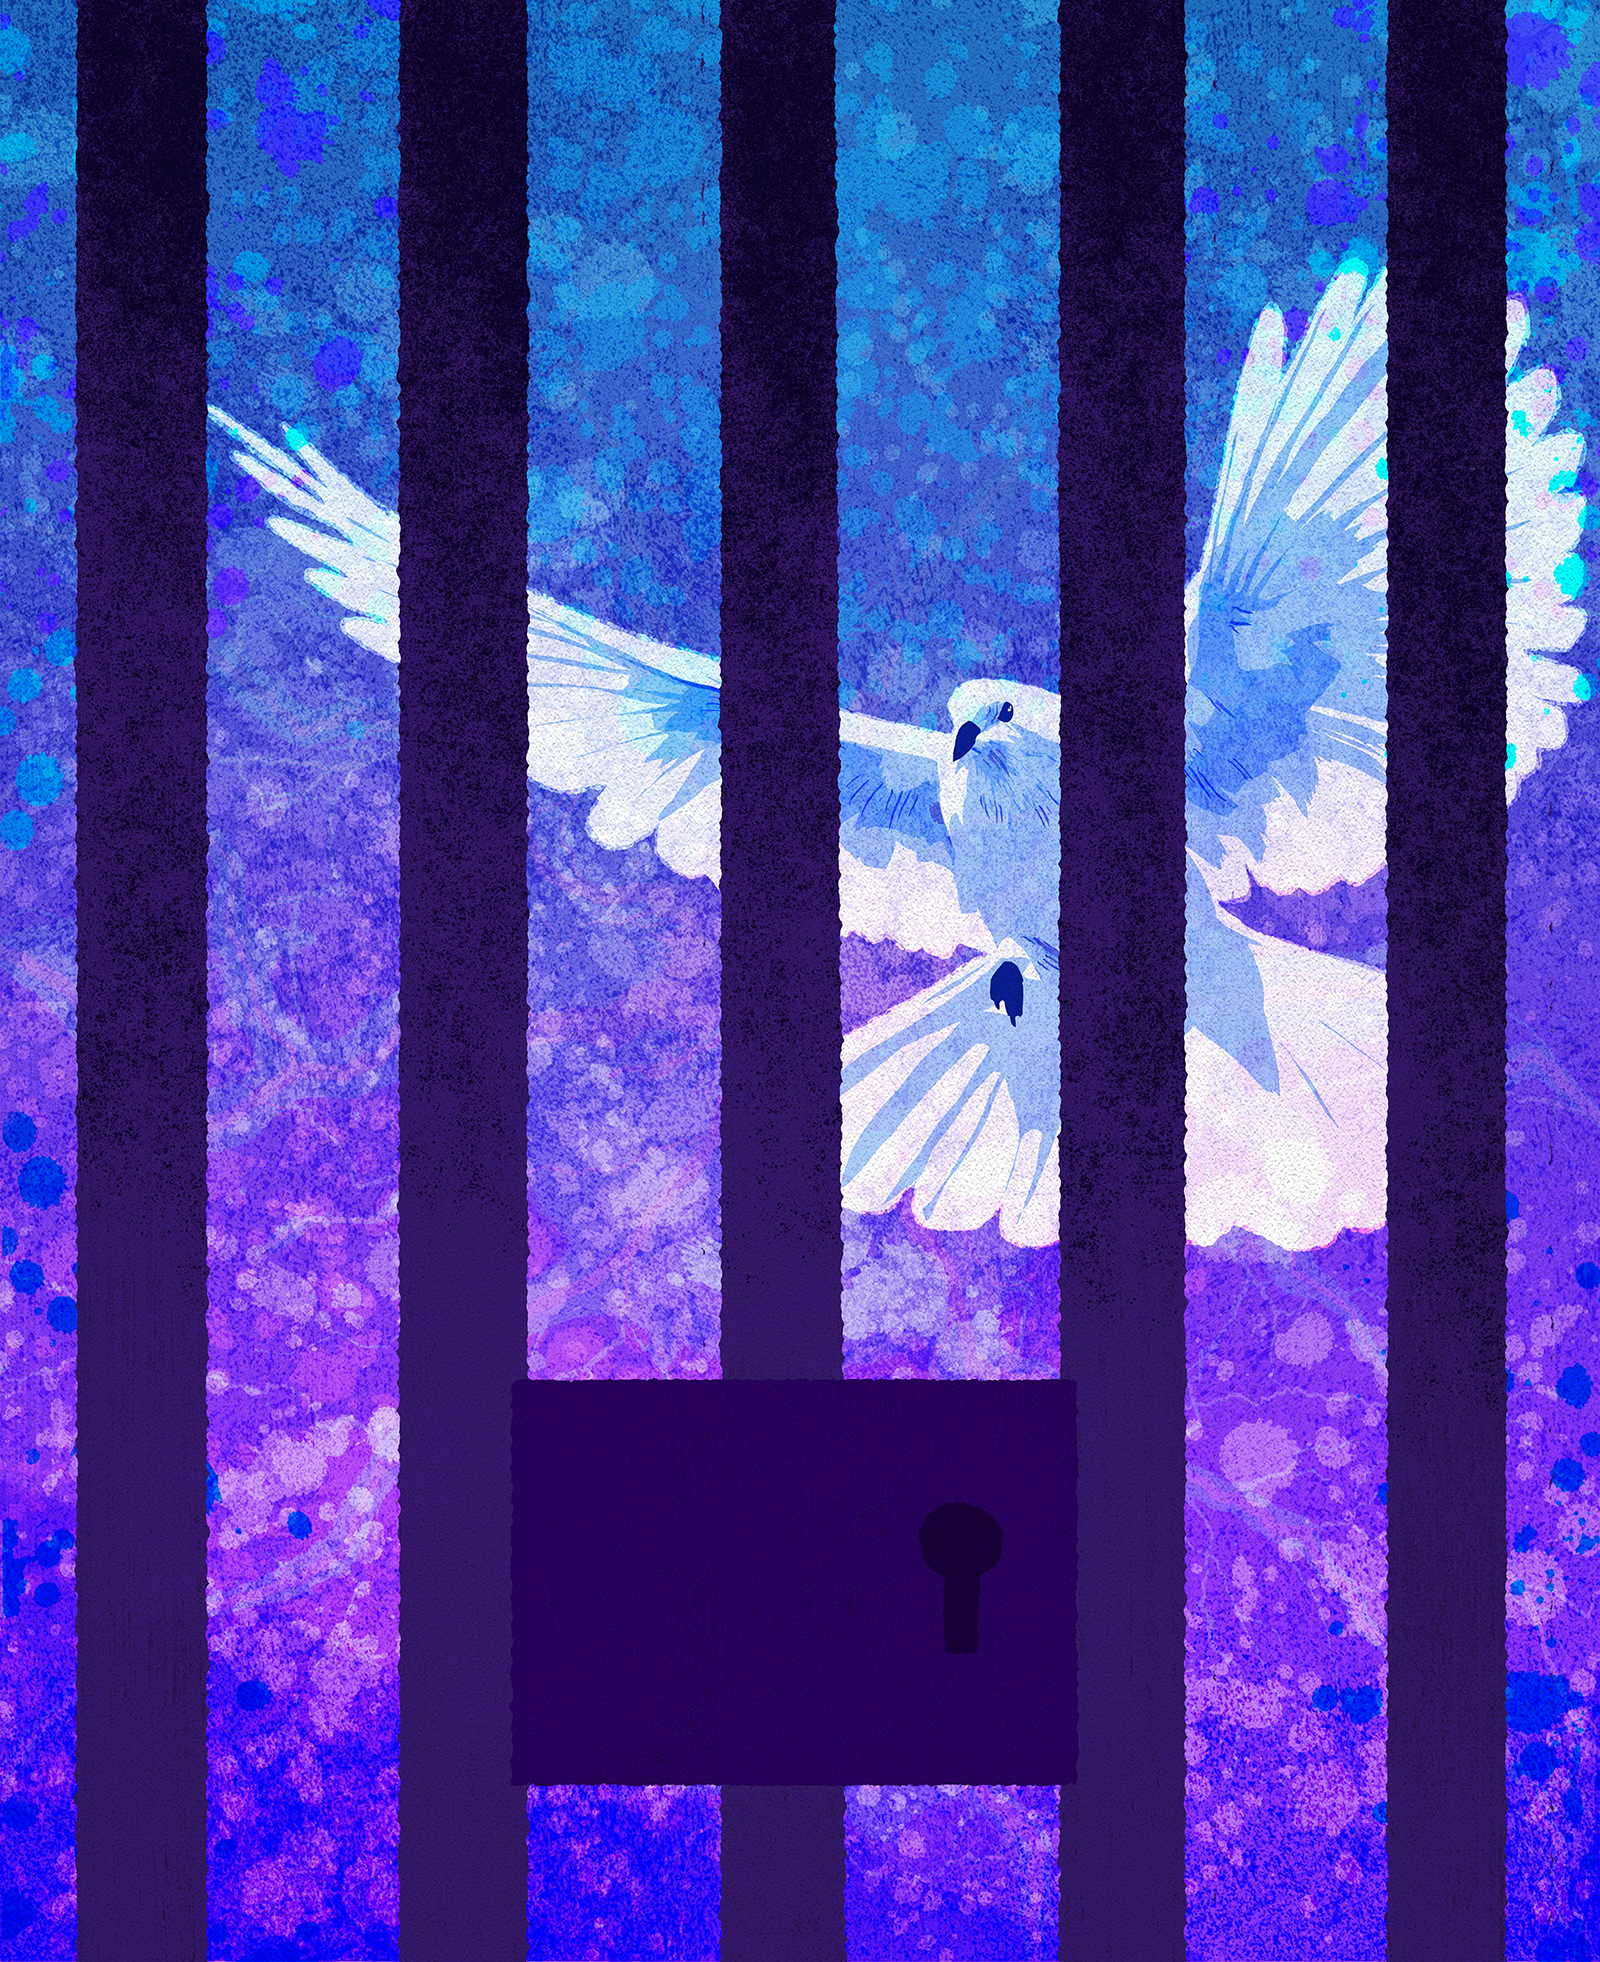 rebecca-hendin-amnesty-international-portrait-illustration-dove-1-1600[pixelswide